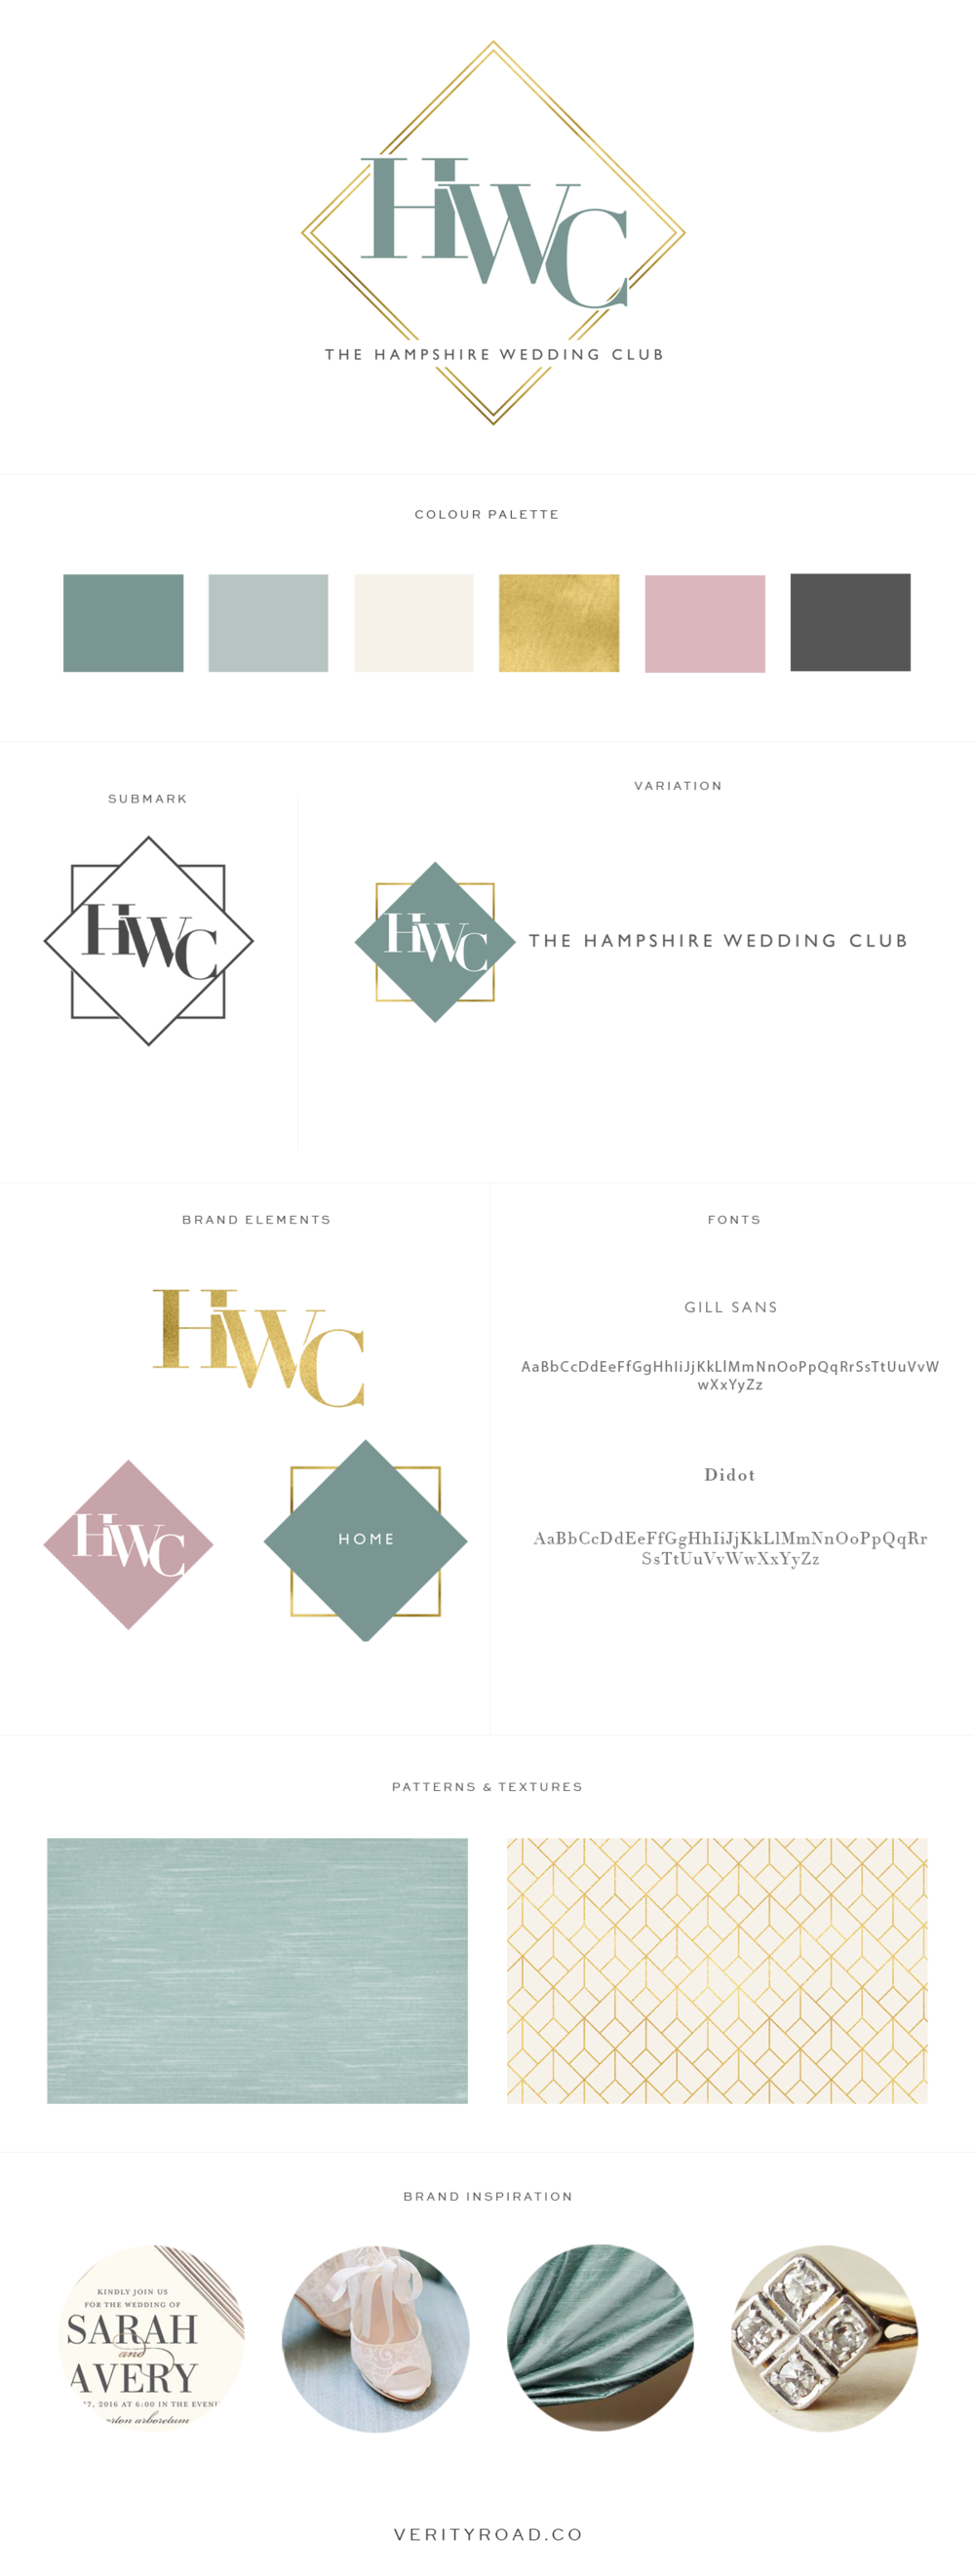 BRAND board for THE HAMPSHIRE WEDDING CLUB, WEDDING PROFESSIONALS, WEDDING SUPPLIERS, PHOTOGRAPHERS, WEDDING BUSINESS, WEDDING PLANNERS, FLORISTS.luxury feminine brand styling and web design for female entrepreneurs FROM VERITY ROAD. FEMININE BRANDING, LOGO, SUBMARK, BRAND ELEMENTS, Inspiration board of typography, serif, CHARCOAL, DUSTY ROSE, TEAL,MUTED MINT, gold, color palette, pattern, TEXTURE, ROMANTIC BRIDE, LUXURY WEDDING, ELEGANT HIGH-END ROMANCE, business owner, blogger, watercolor, geometric shape. See more for INSPIRATION BOARD, brand style guide, social media branding .